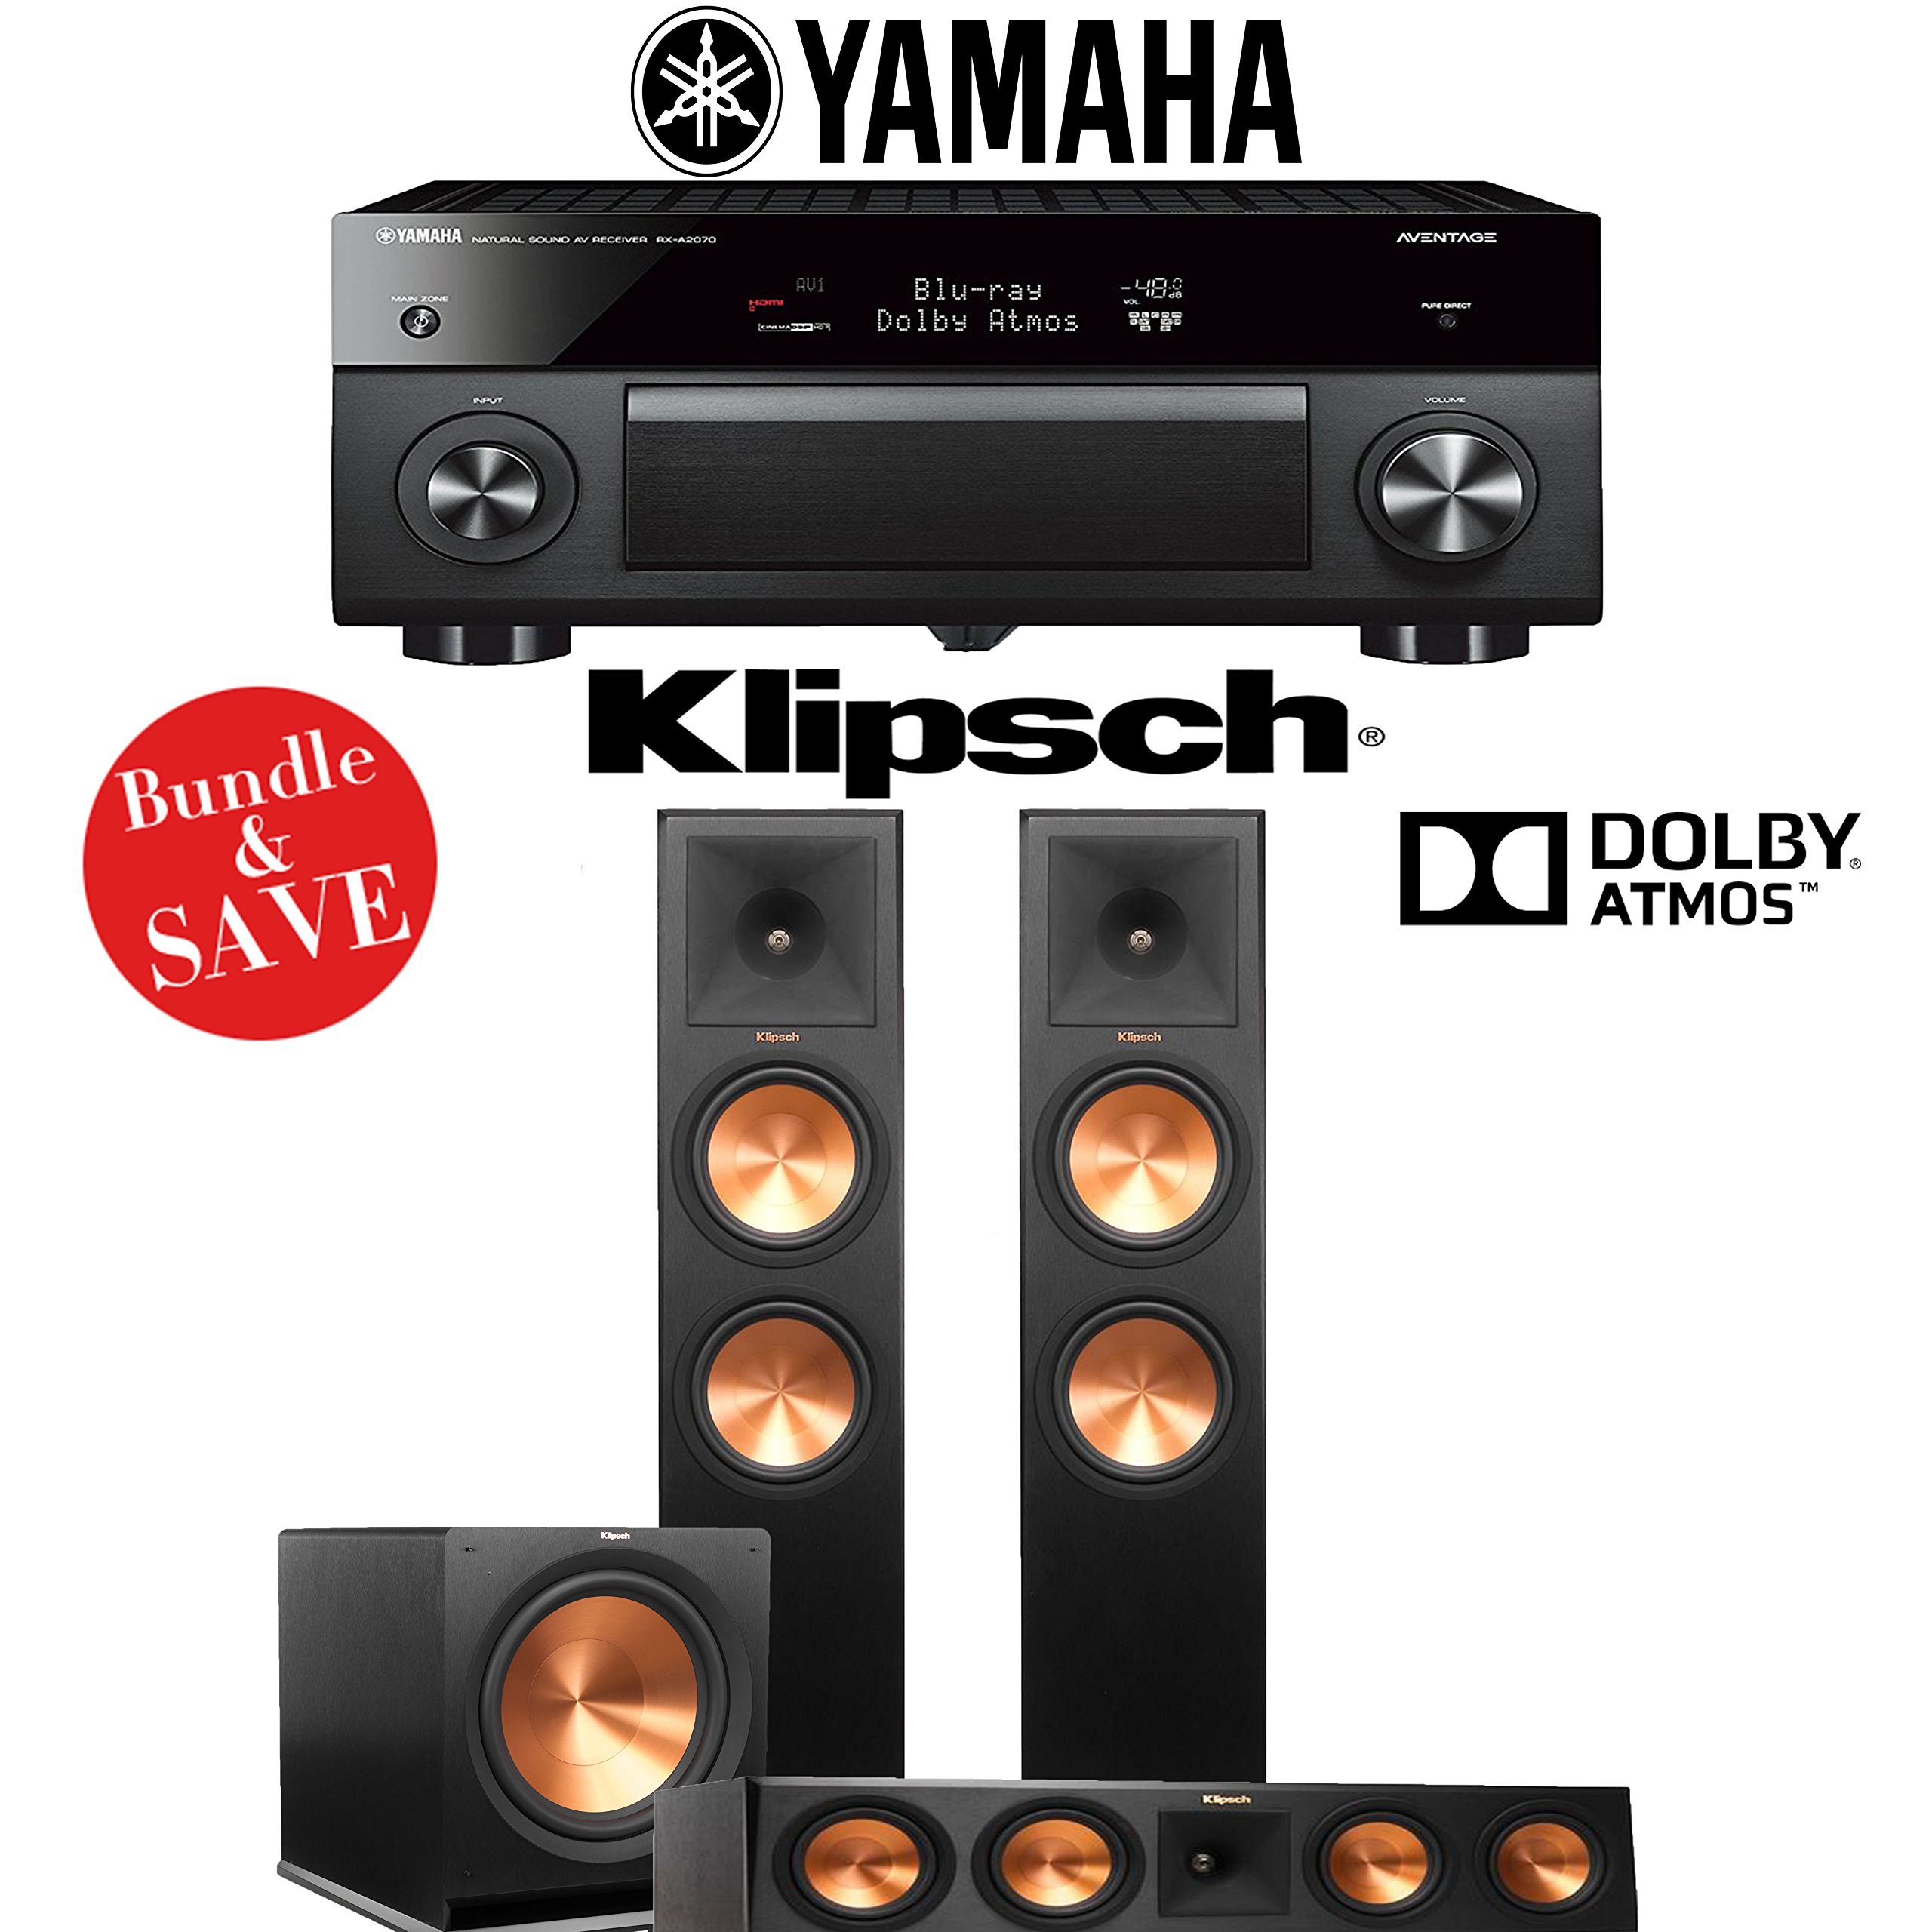 Yamaha AVENTAGE RX-A2070BL 9.2-Ch 4K Network AV Receiver + Klipsch RP-280FA + Klipsch RP-450C + Klipsch R-115SW - 3.1-Ch Dolby Atmos Home Theater Package by Yamaha